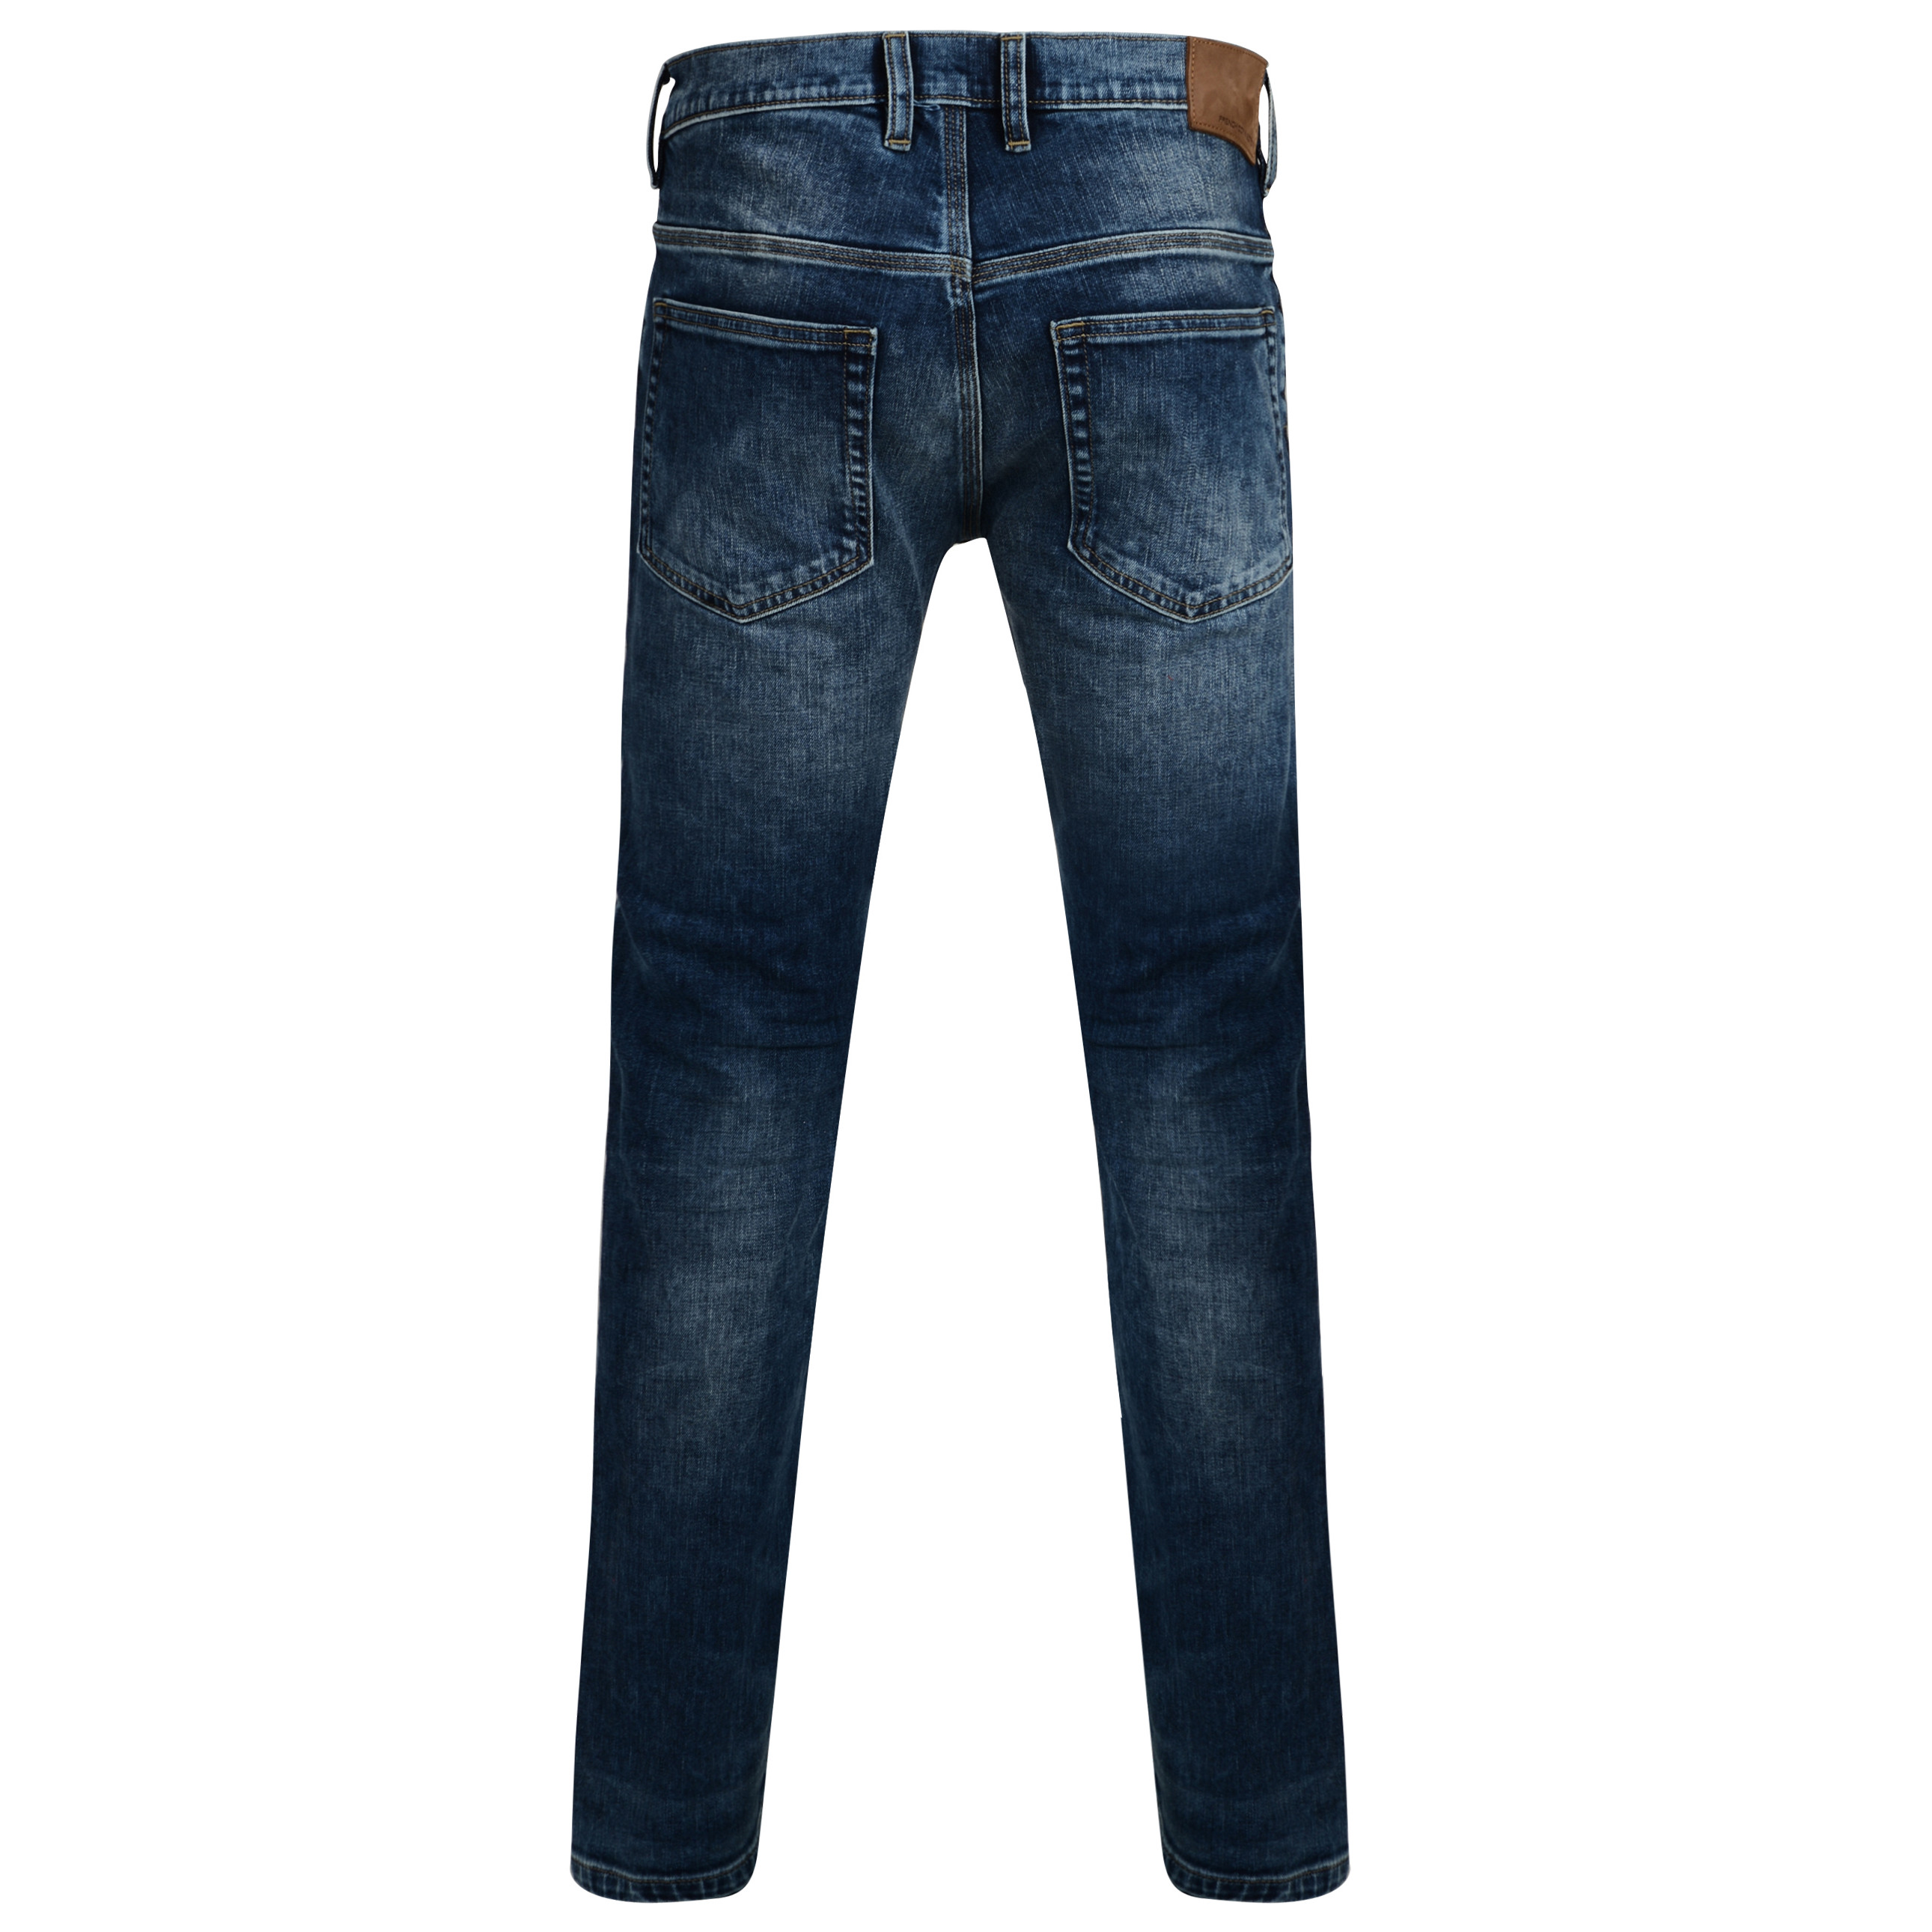 30e67324 French Connection Jeans - Slim Tapered Faded Indigo_55 Denim Jeans | Jean  Scene